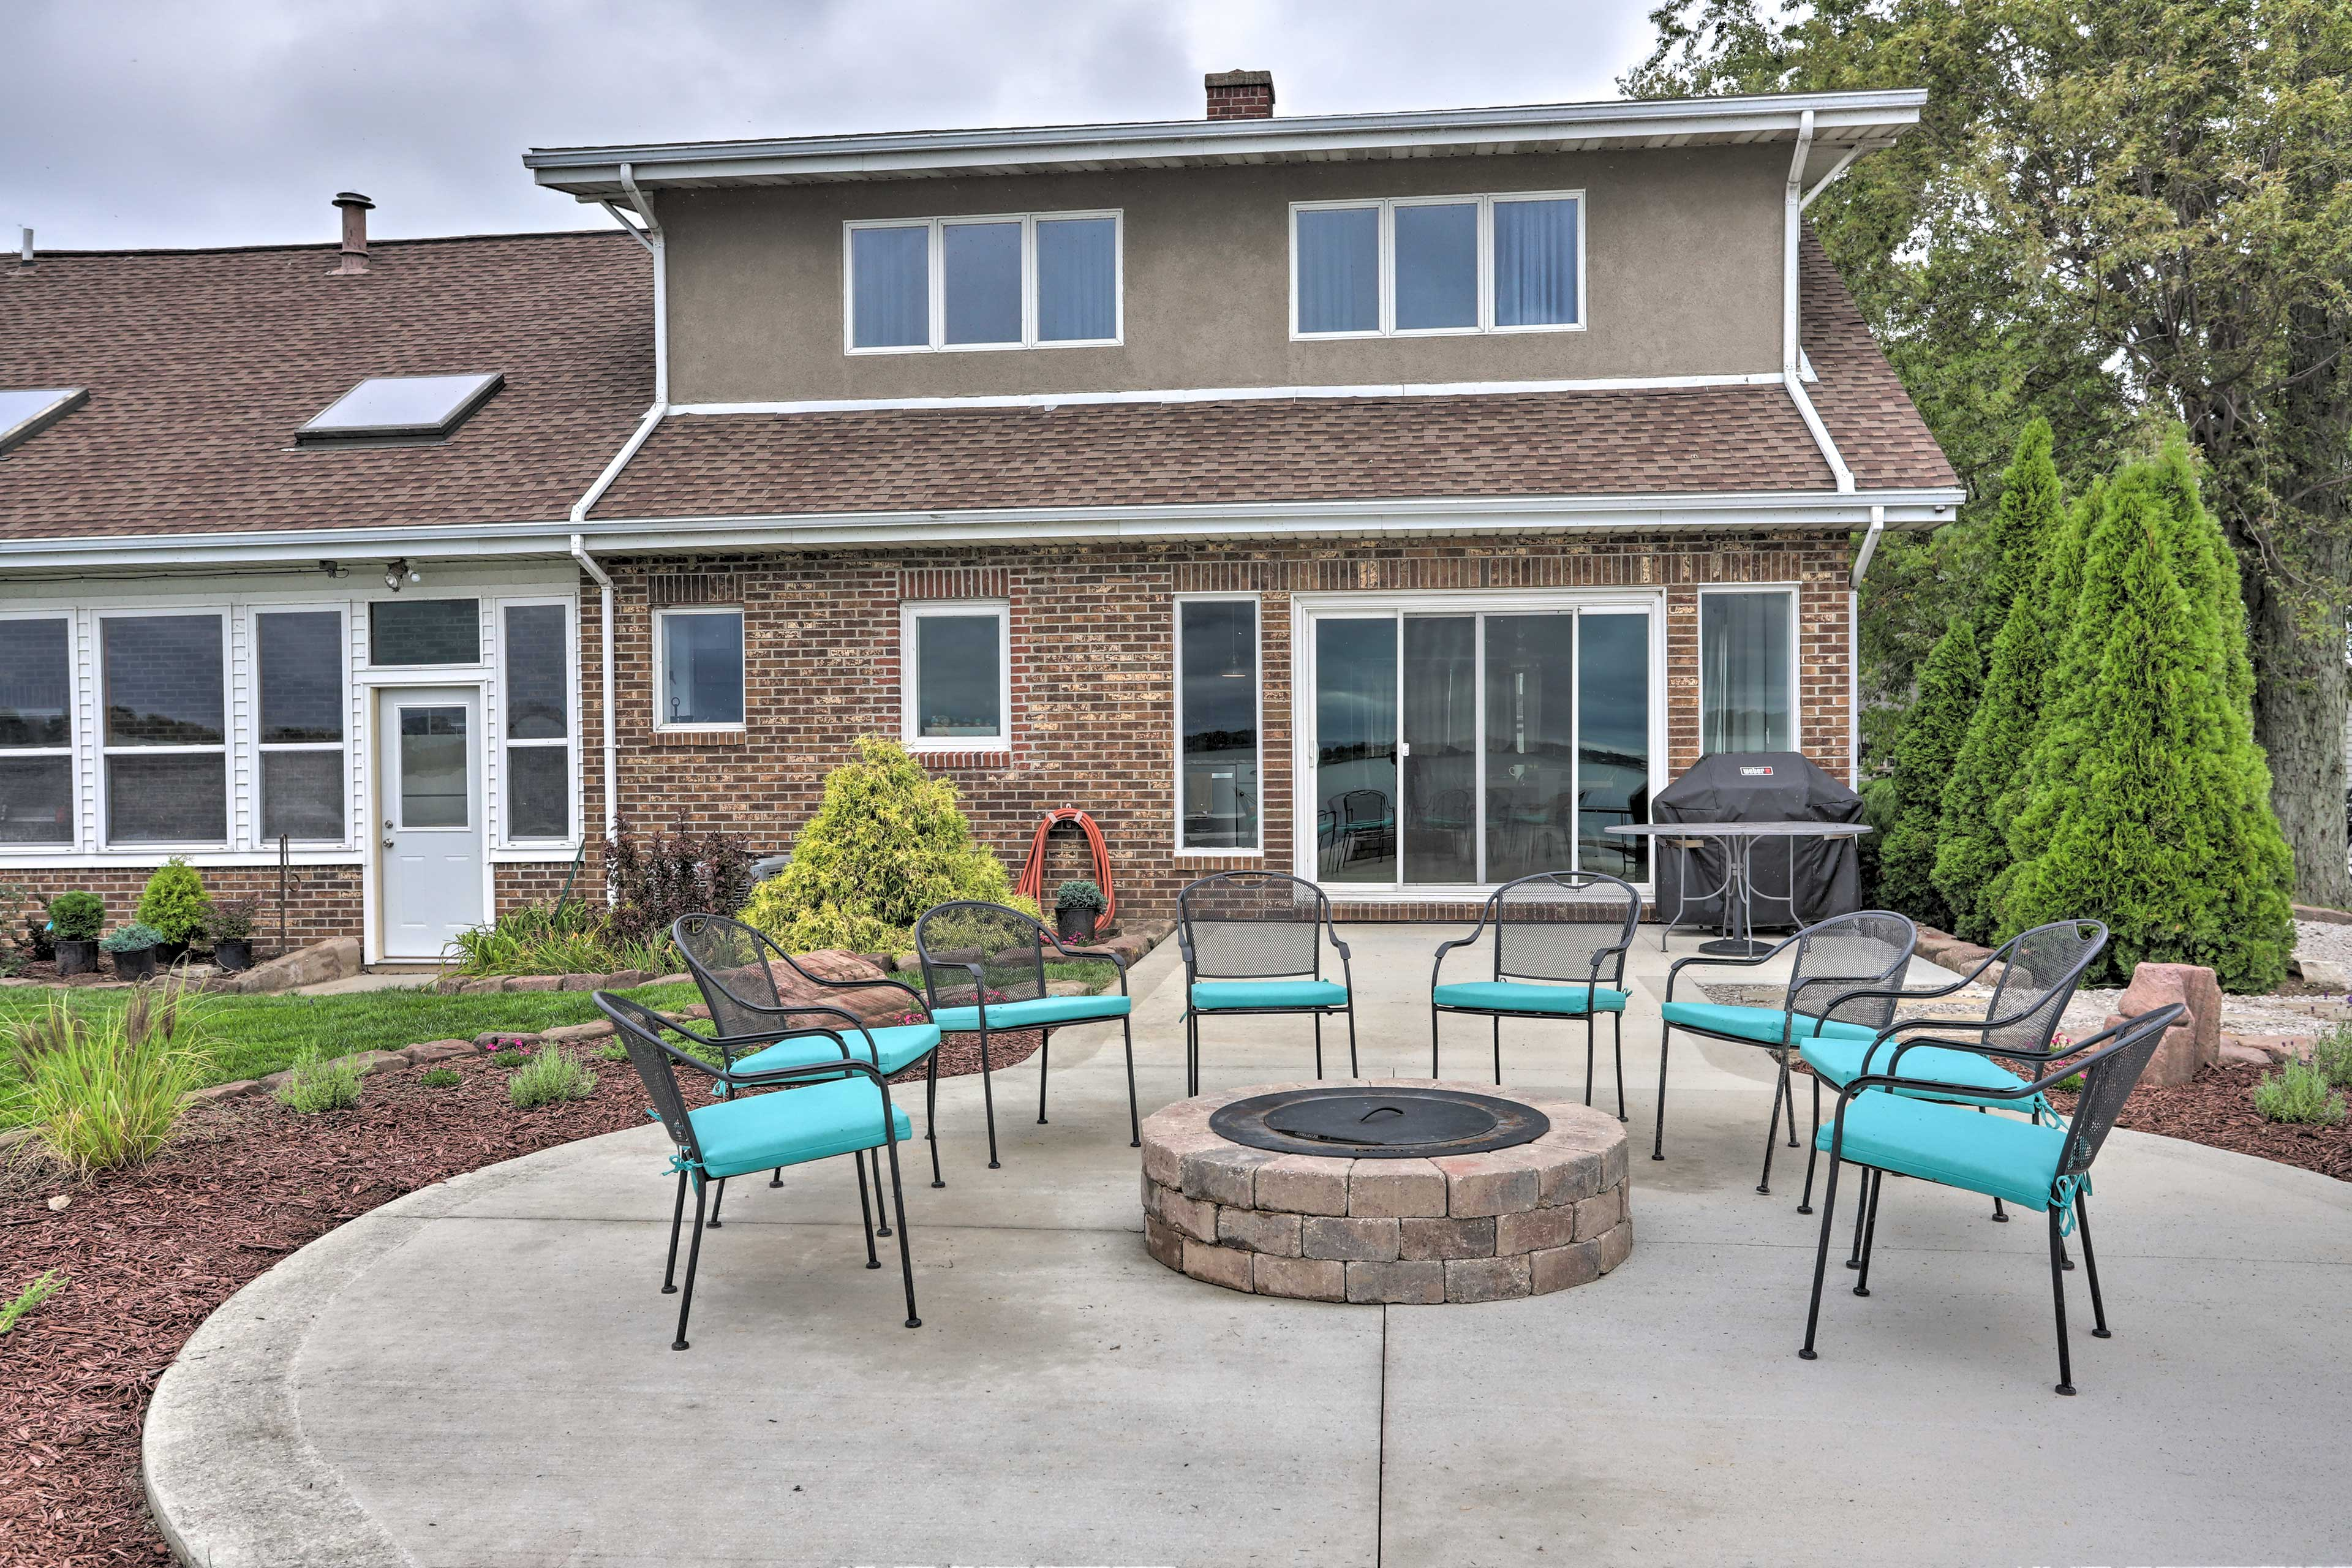 The 3-bedroom, 2.5-bathroom house accommodates up to 7 guests.